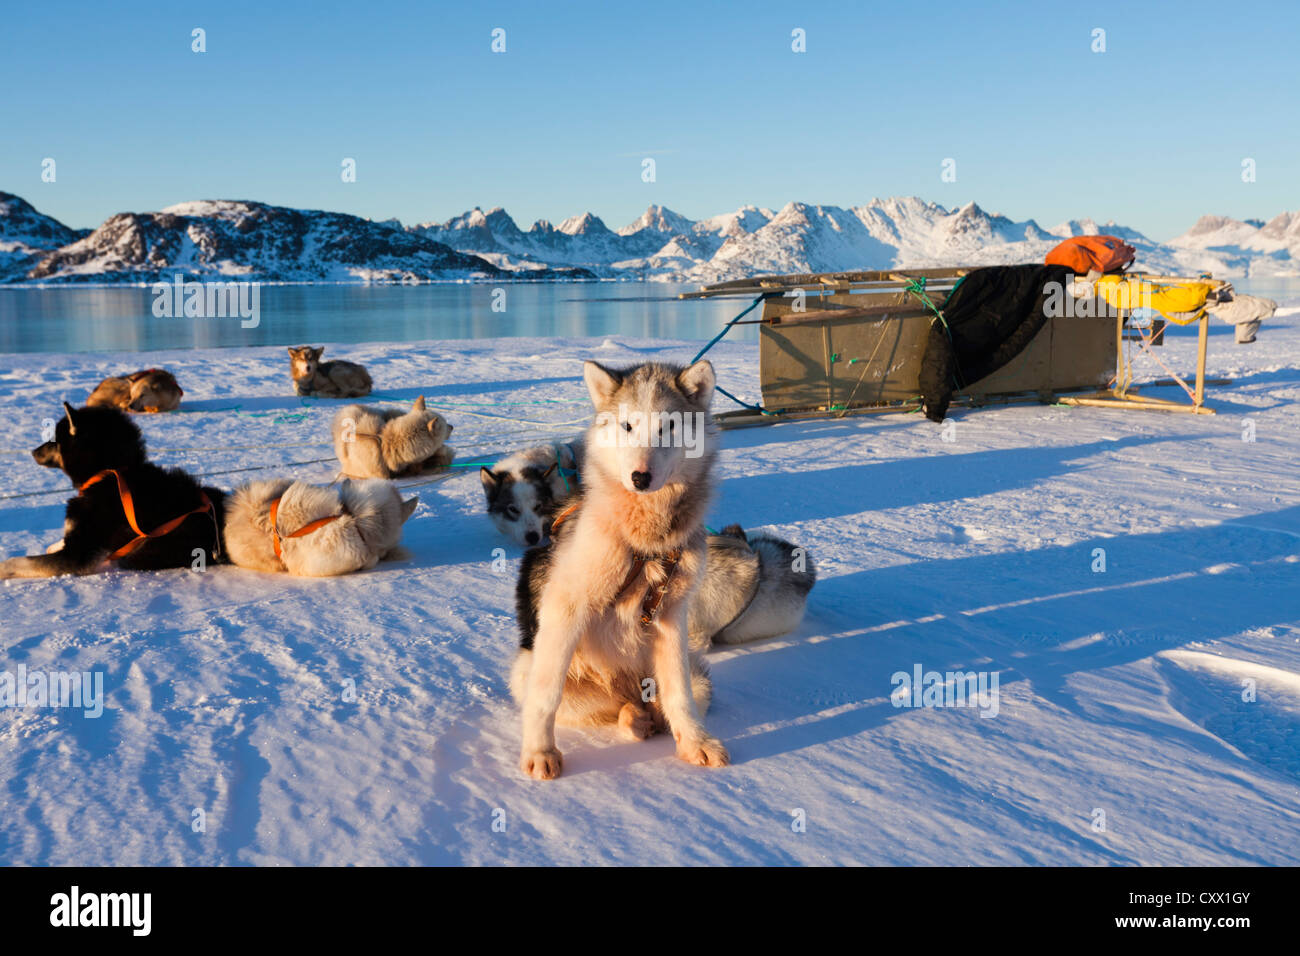 Huskies in harness resting with sled in Greenland - Stock Image